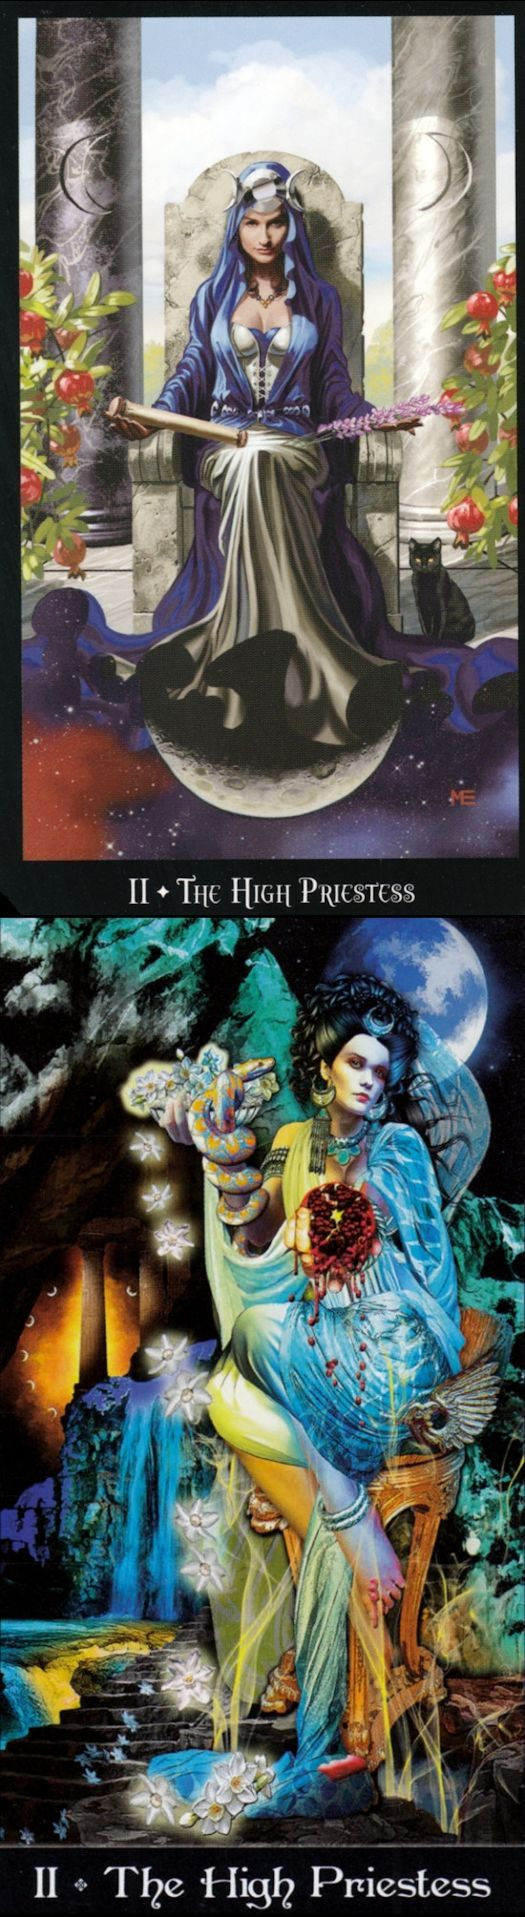 THE HIGH PRIESTESS: inner voice and repressed/unheard inner voice (reverse). Witches Tarot deck and Apokalypsis Tarot deck: tarot holder, lotus tarot free online reading vs tarot card decks. New wiccan marvel and pagan. #pentacle #ios #selfempowerment #highpriestess #unicorn #fool